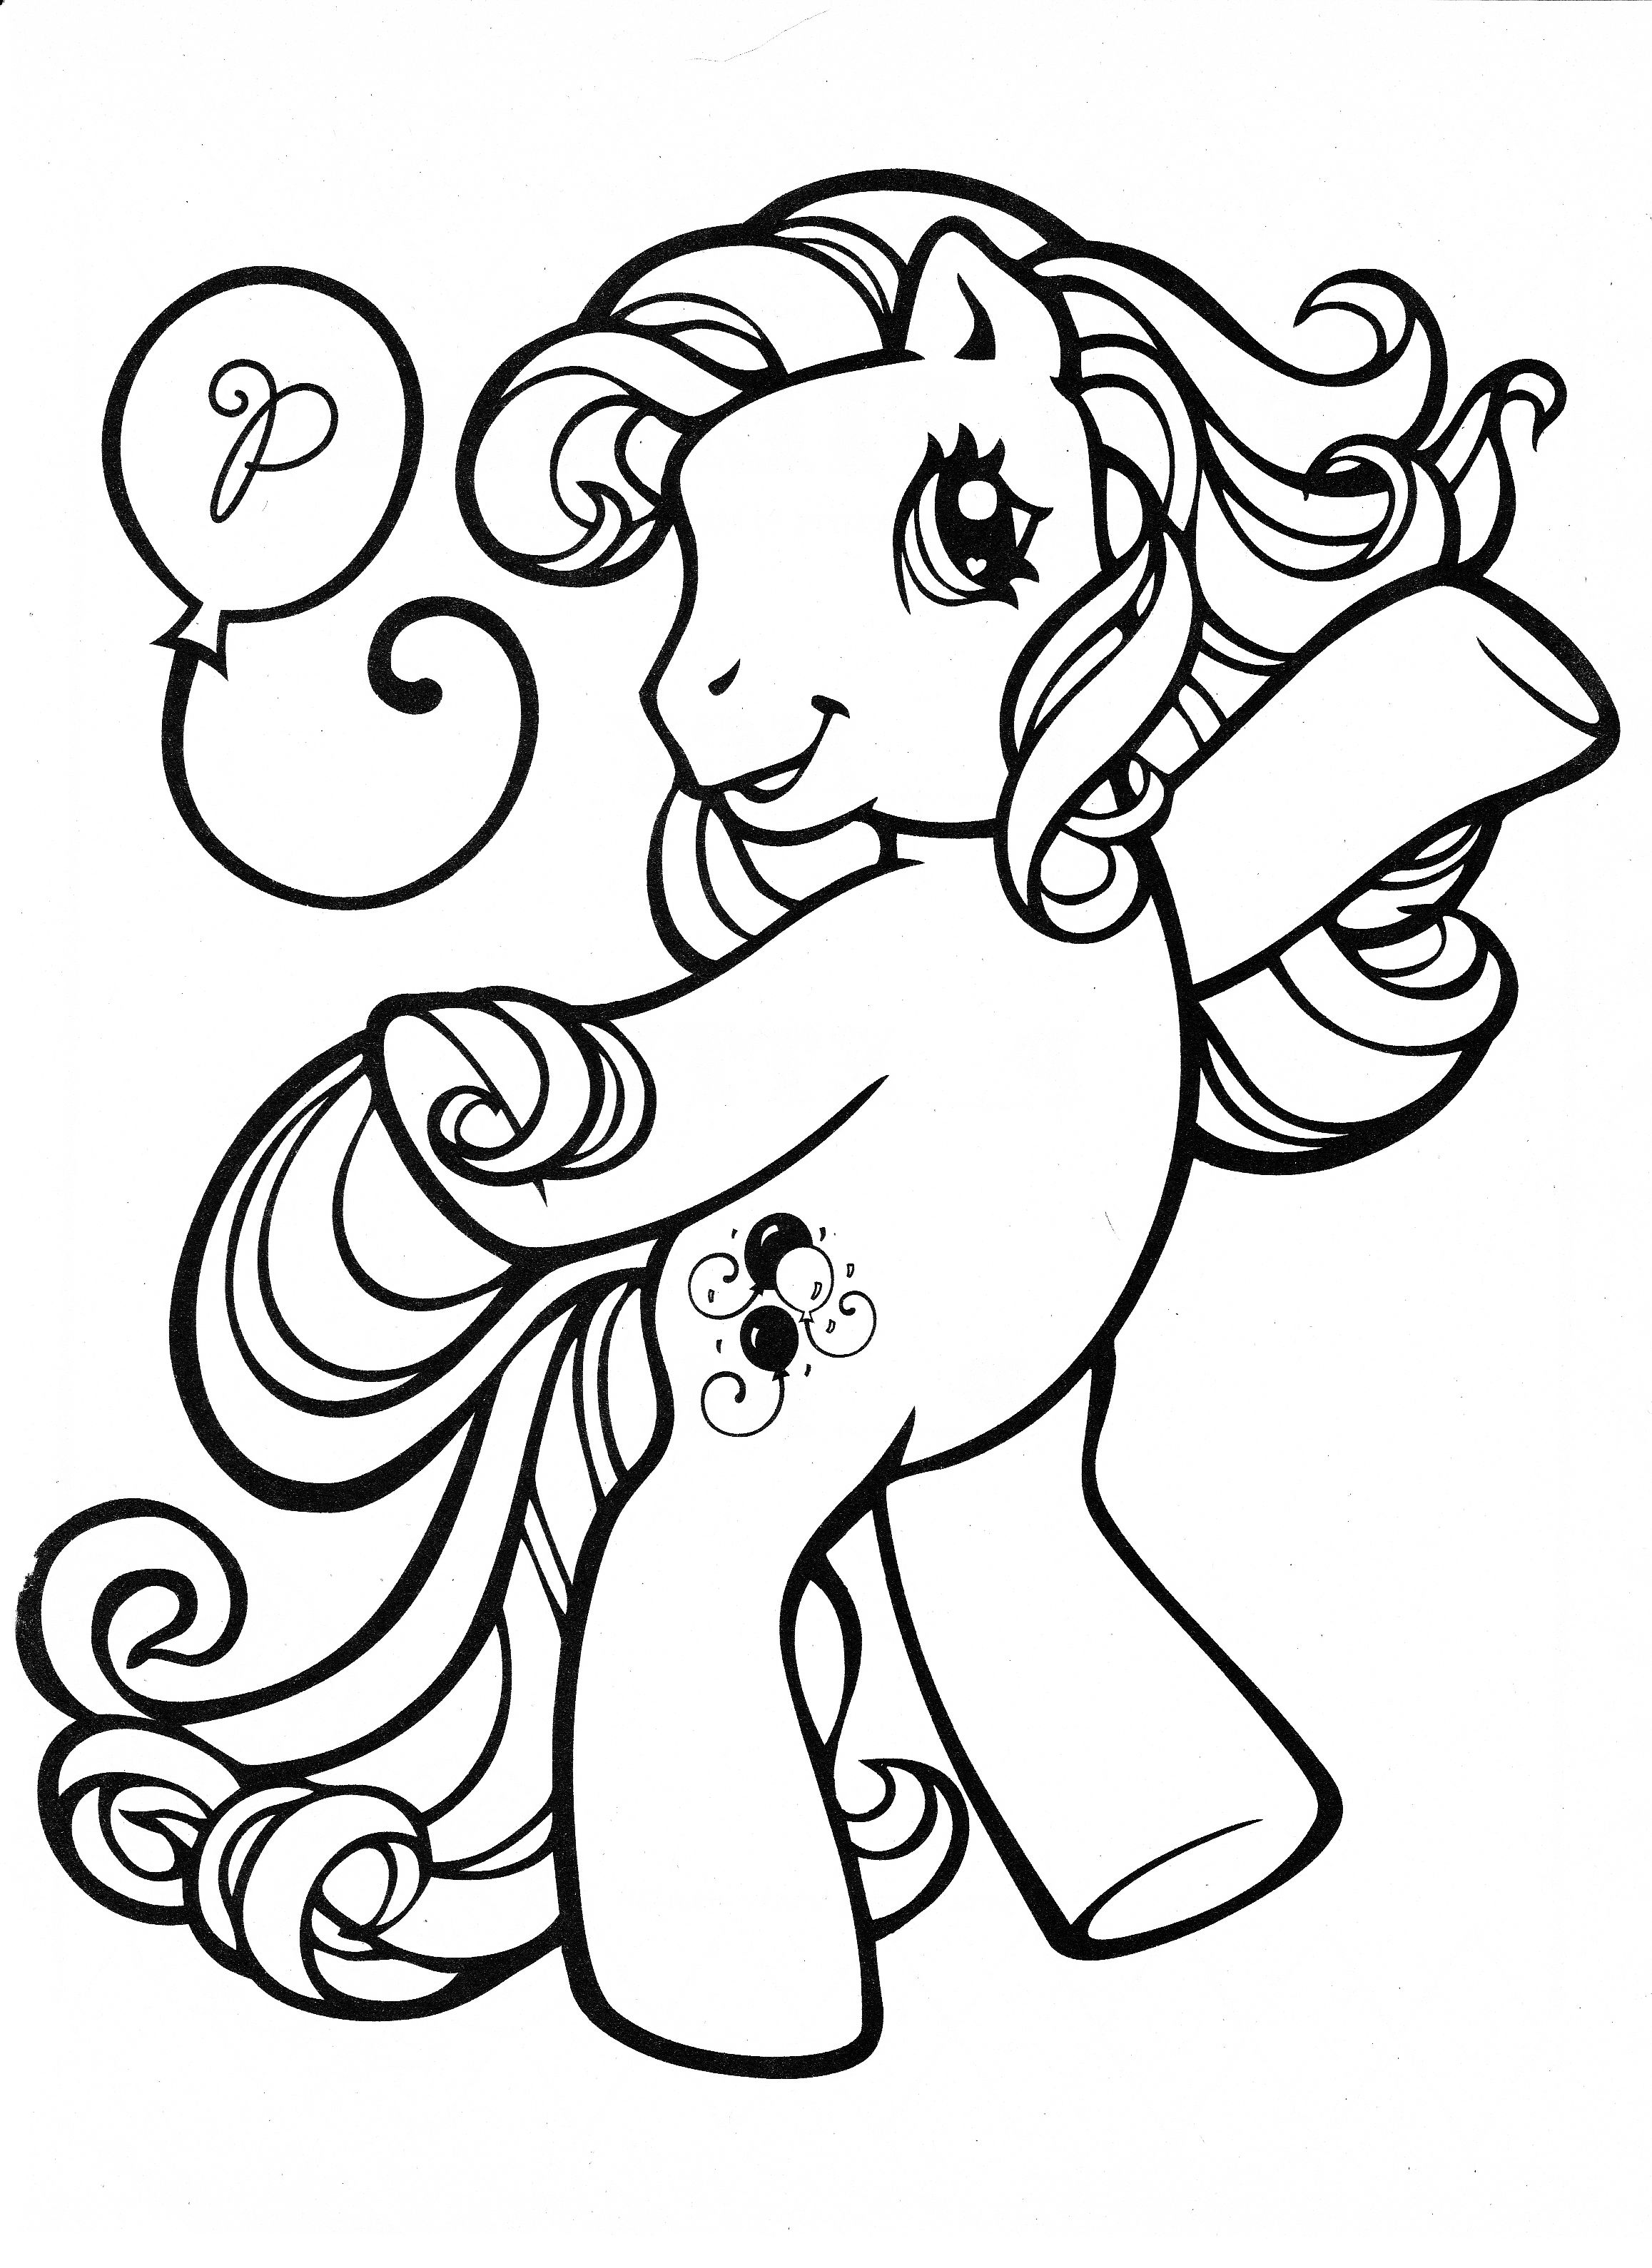 Mlp coloring pages fillies horses ~ My Little Pony coloring page MLP - Pinkie Pie | Color ...